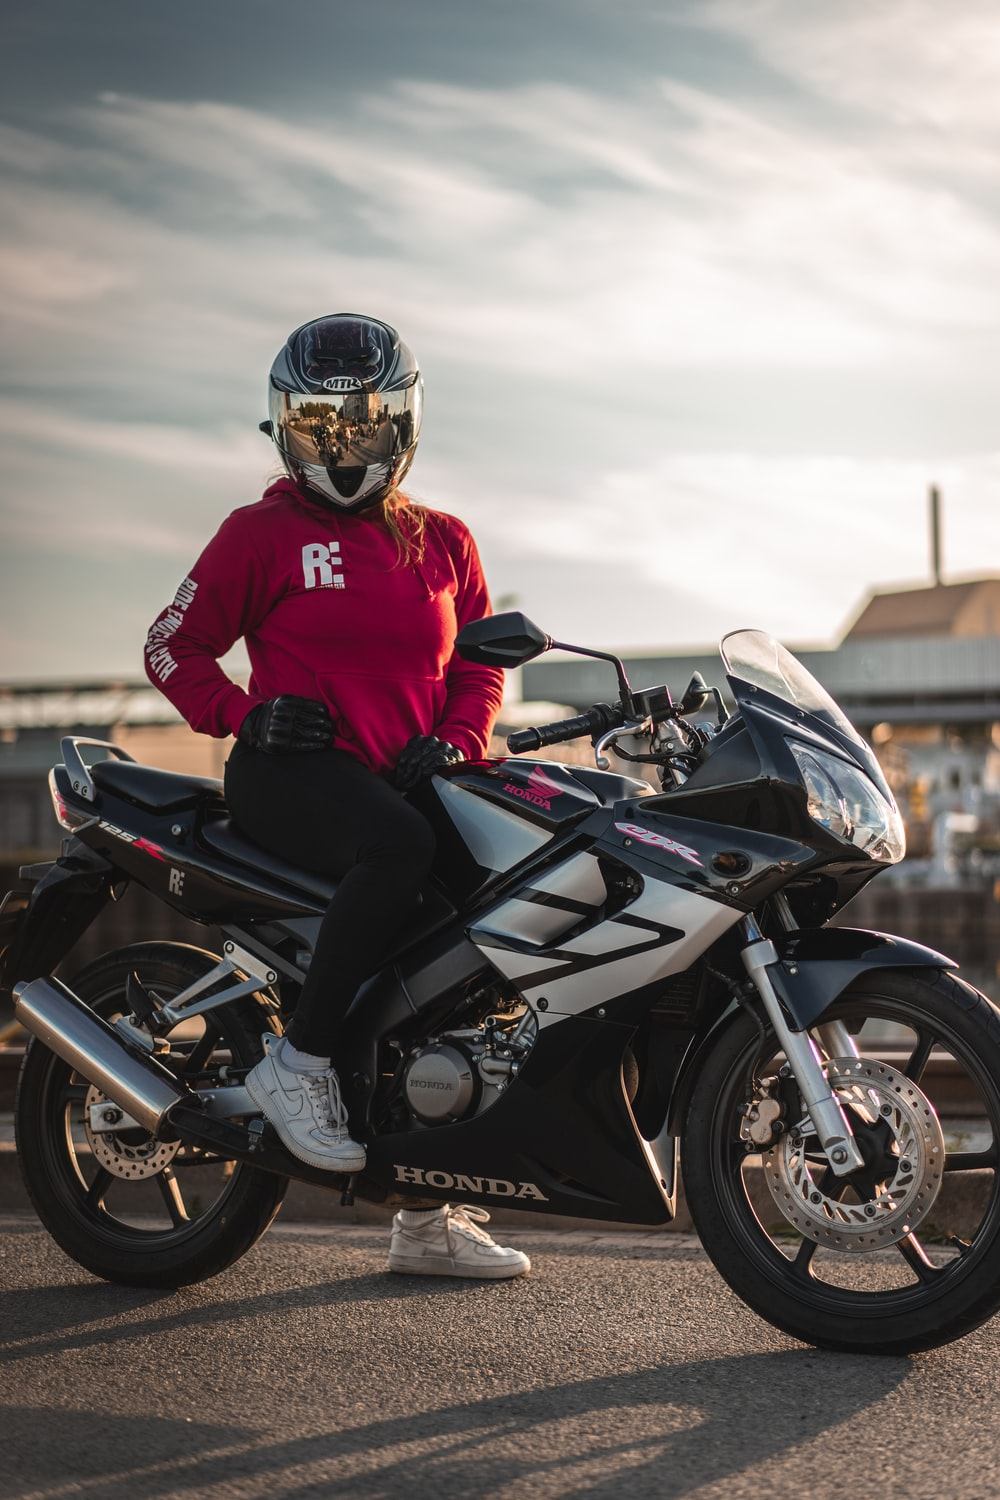 person sitting on Honda sports bike during day